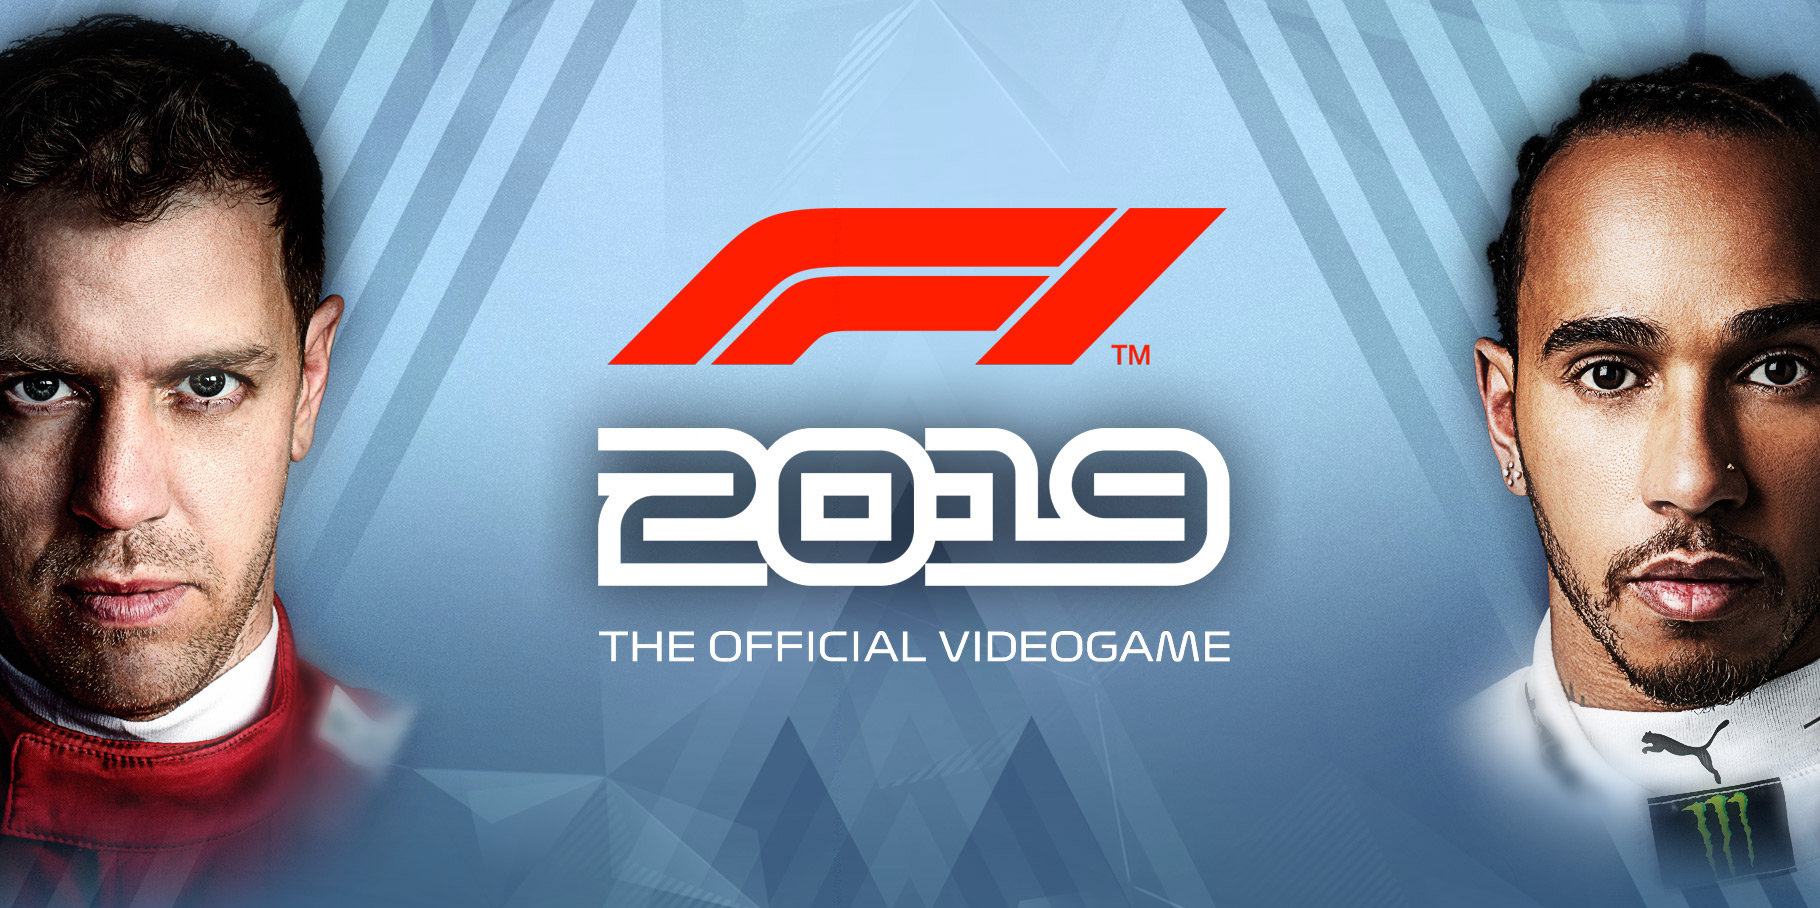 F1 2019 Official   Download F1 2019 Full Game for PC Free